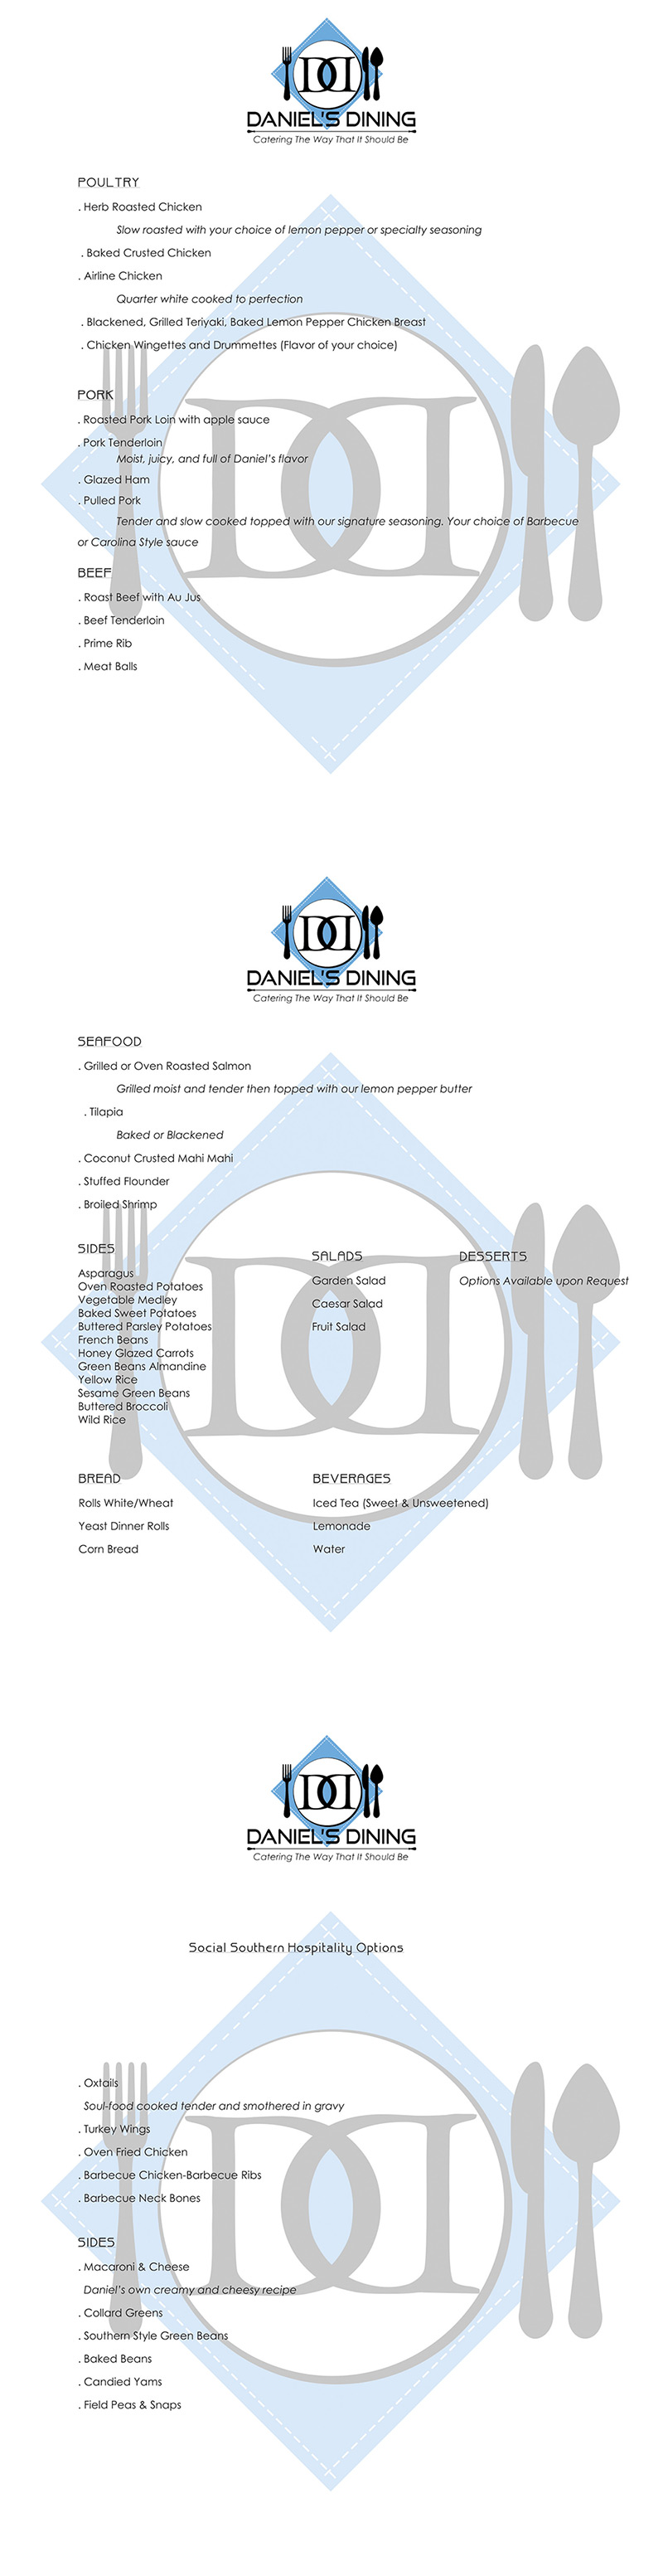 Catering Menus Daniels Dining Llc Of Chicken Wing Bones Diagram Make Your Reservation Today For Next Event